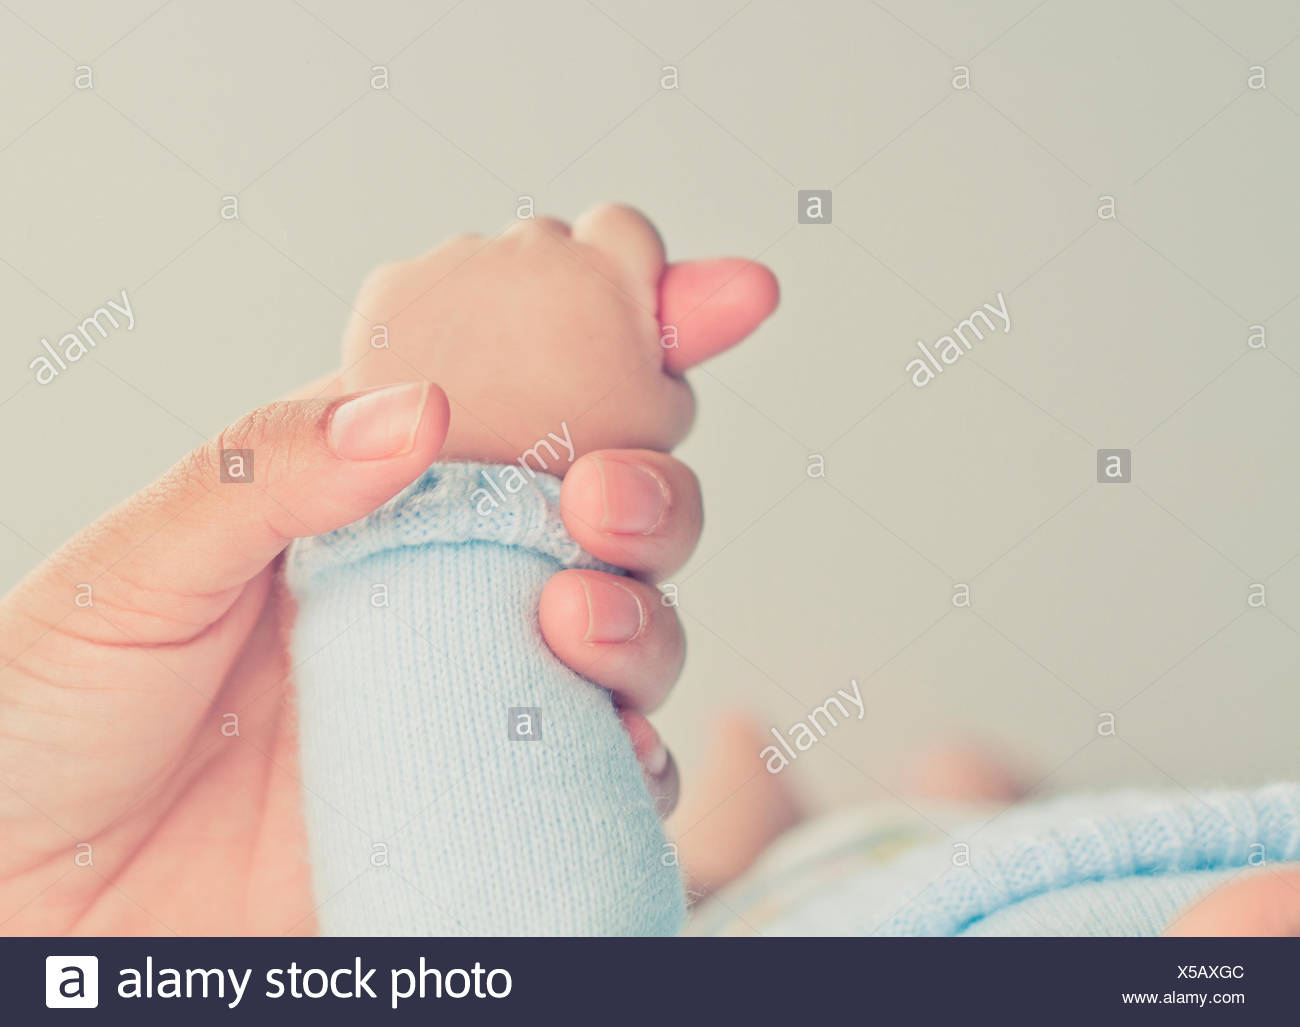 Mother's hand holding baby's hand - Stock Image